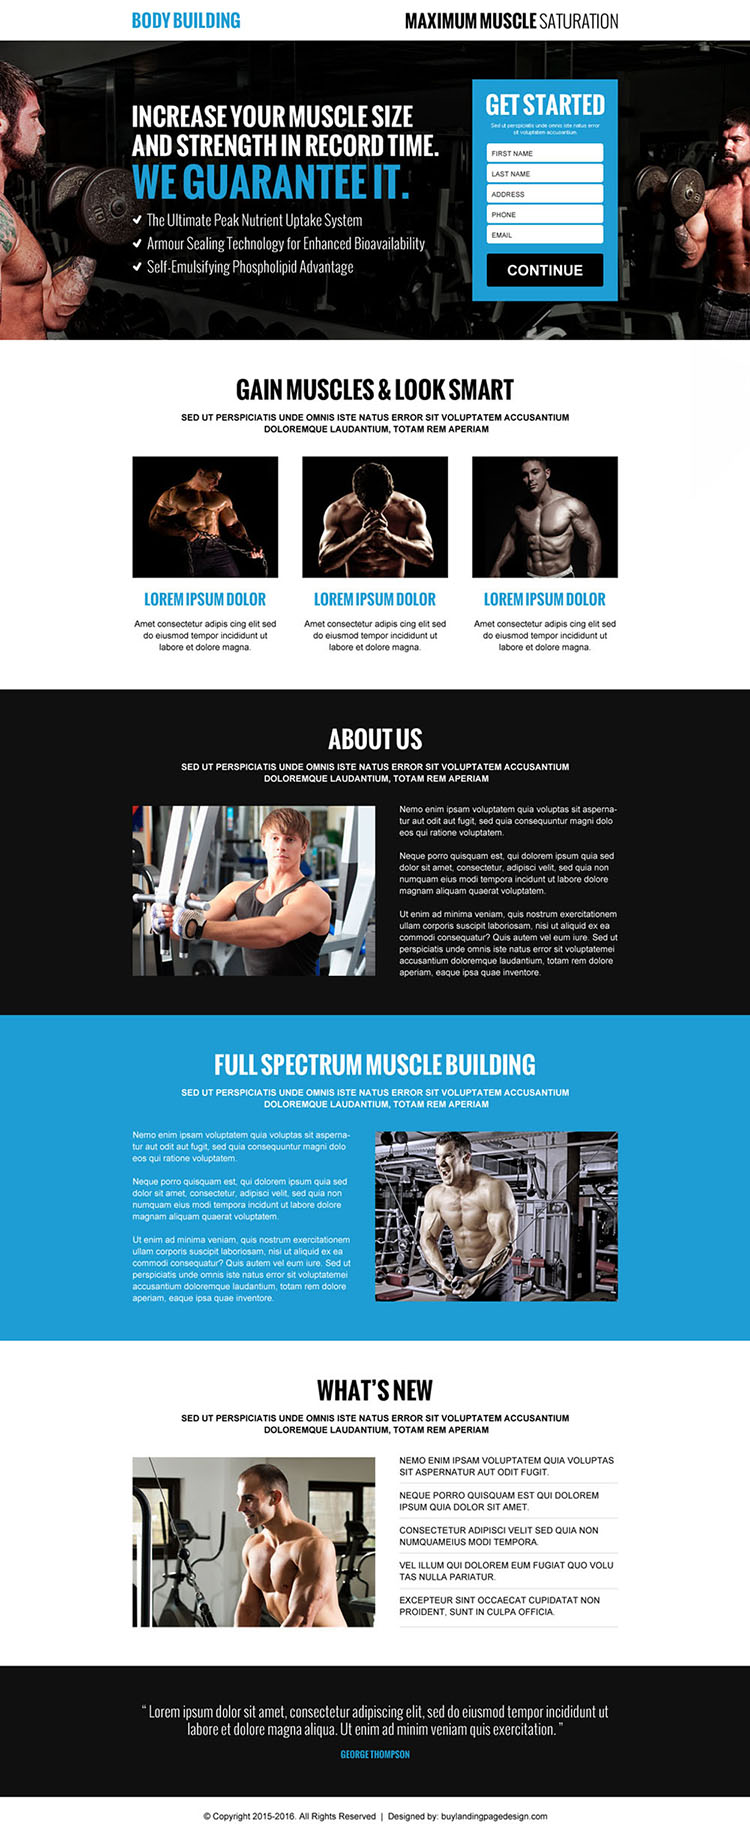 gain muscles look smart lead generating landing page design